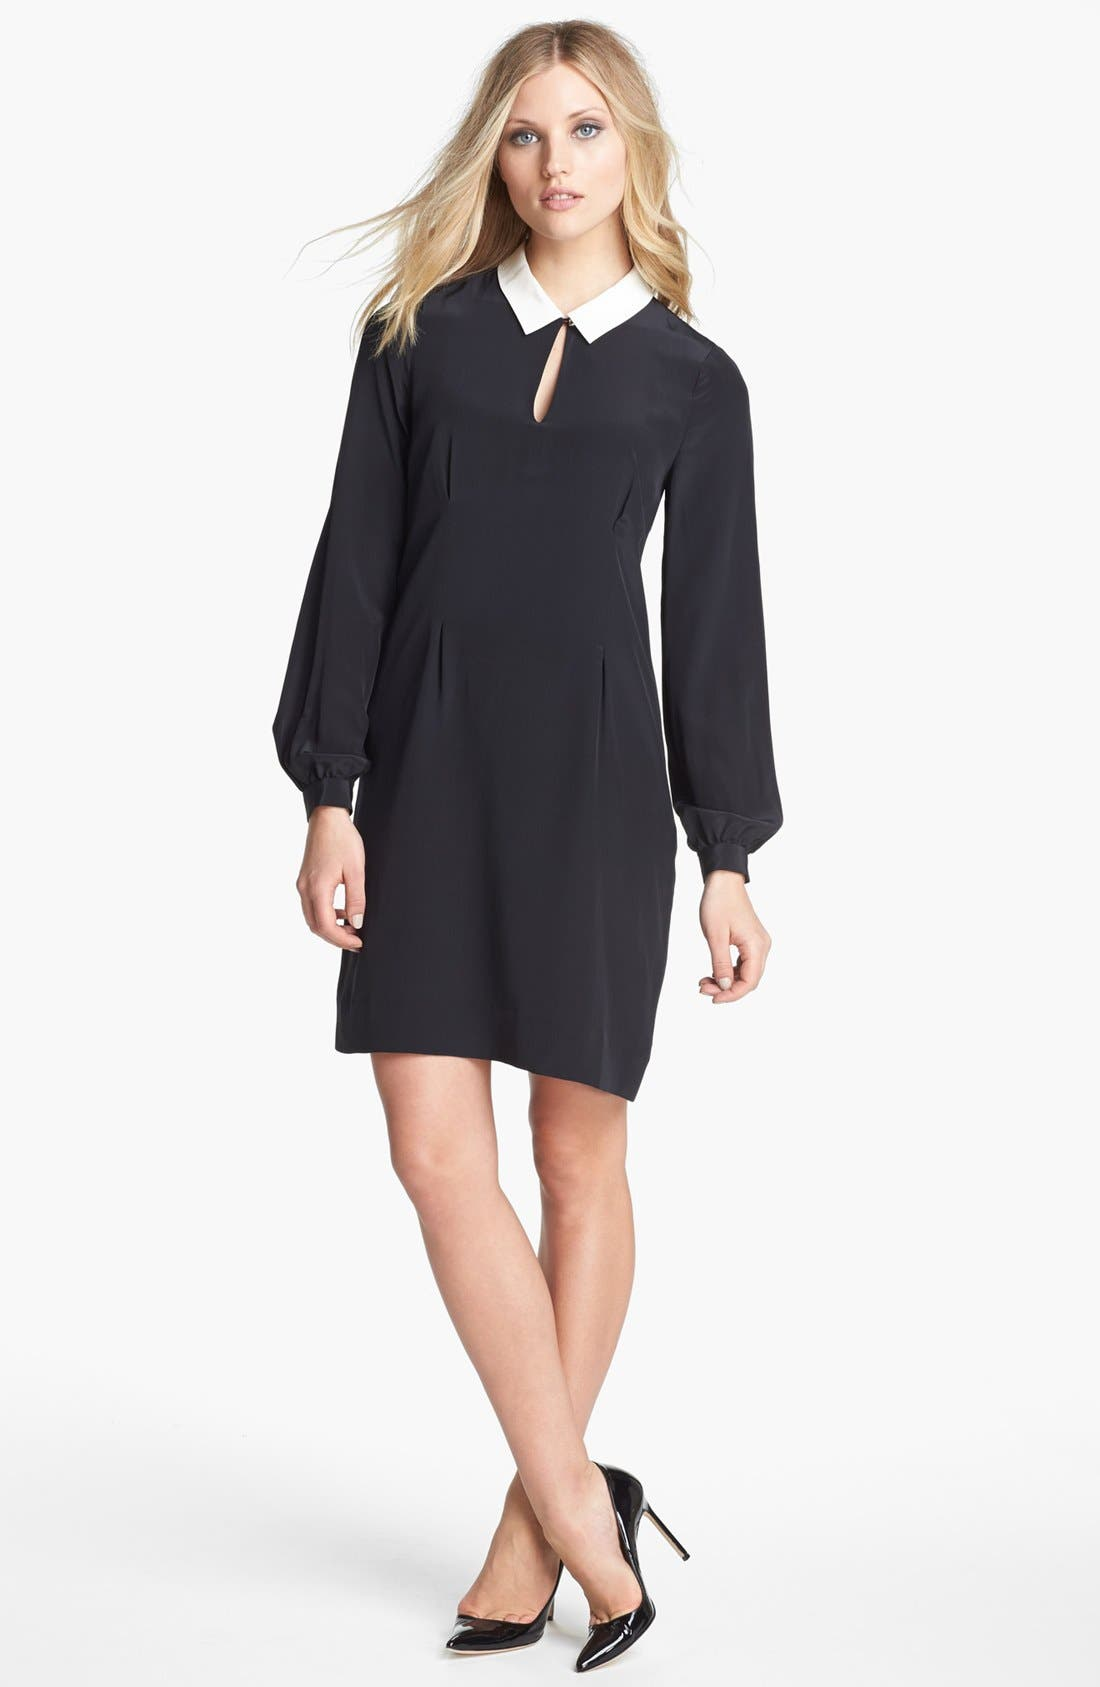 Alternate Image 1 Selected - kate spade new york 'catarina' silk sheath dress